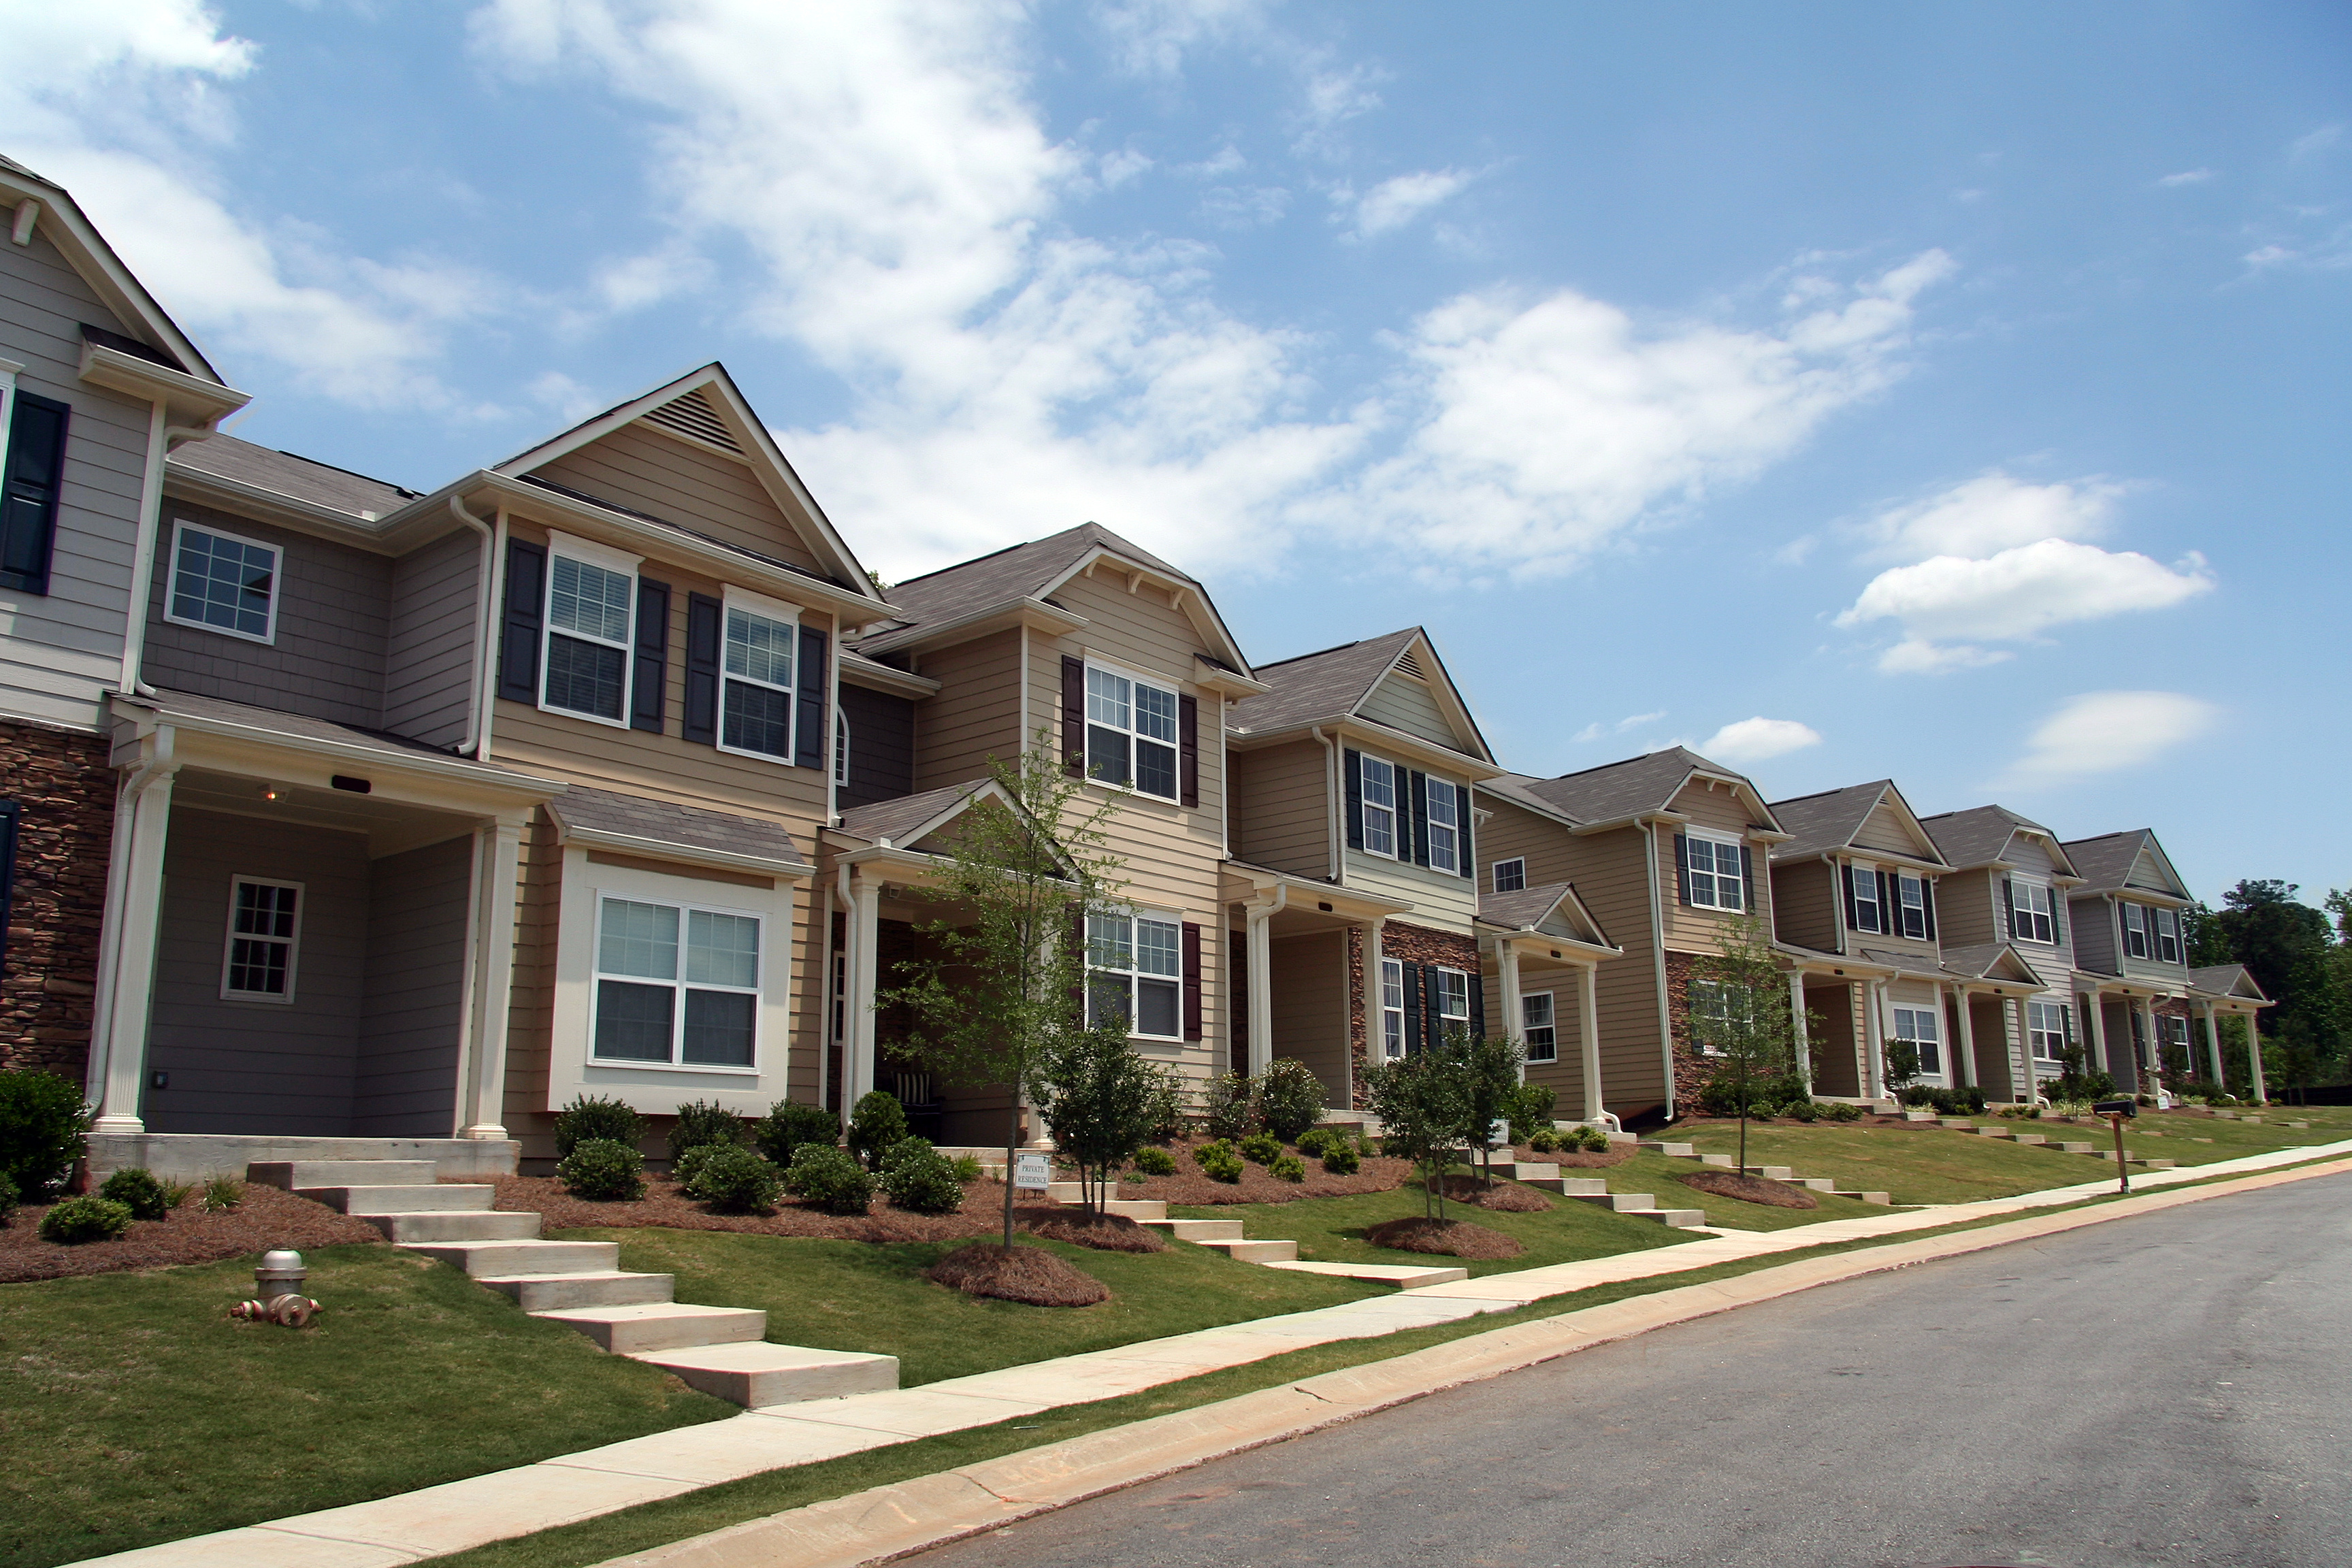 Texas Property Insurance 101 - Do You Know Your Policy's Deductible?